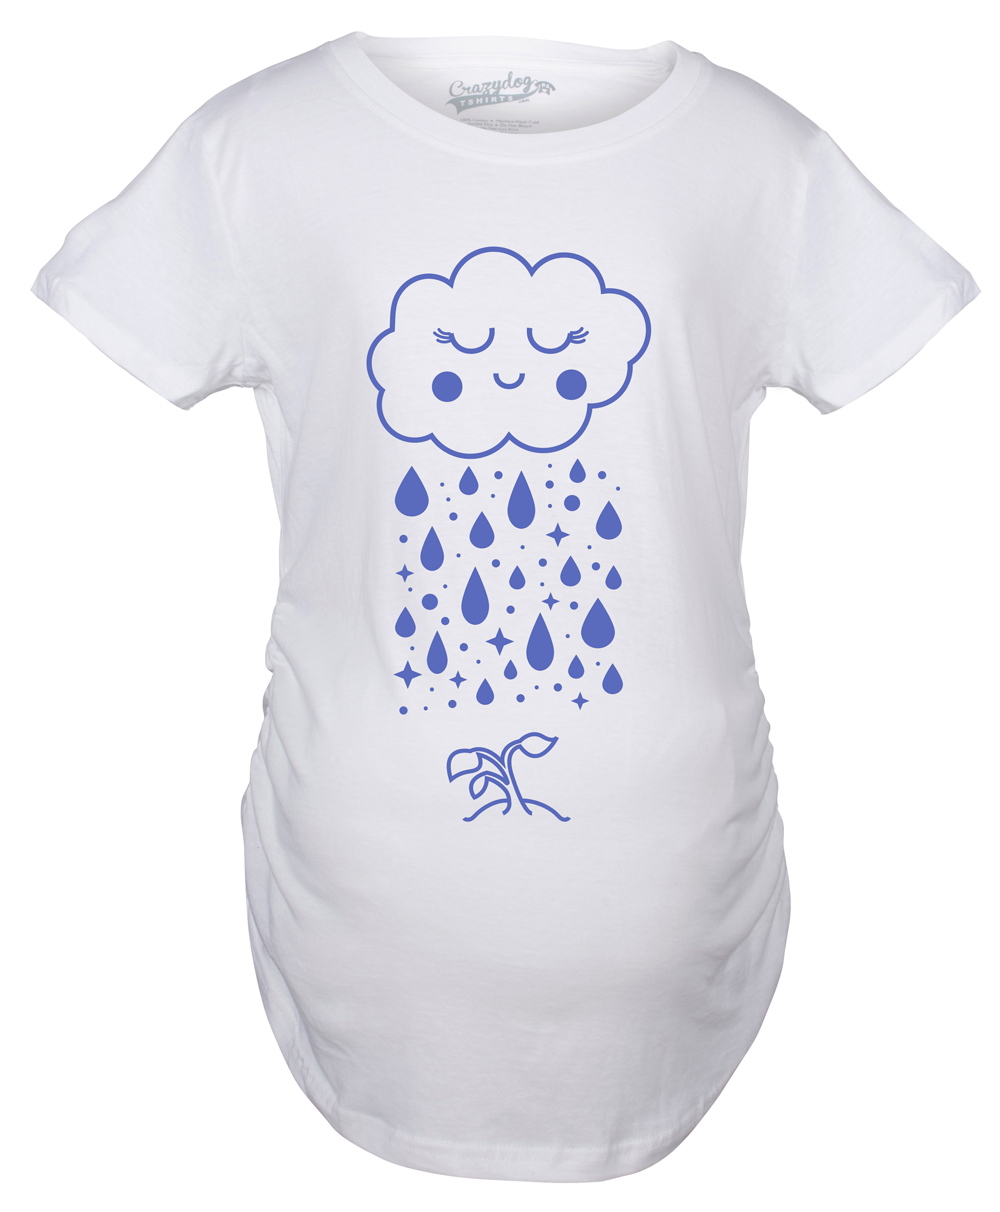 Maternity Cloud Seedling Pregnancy Tshirt Cute Nature Outdoors Tee For Baby Bump